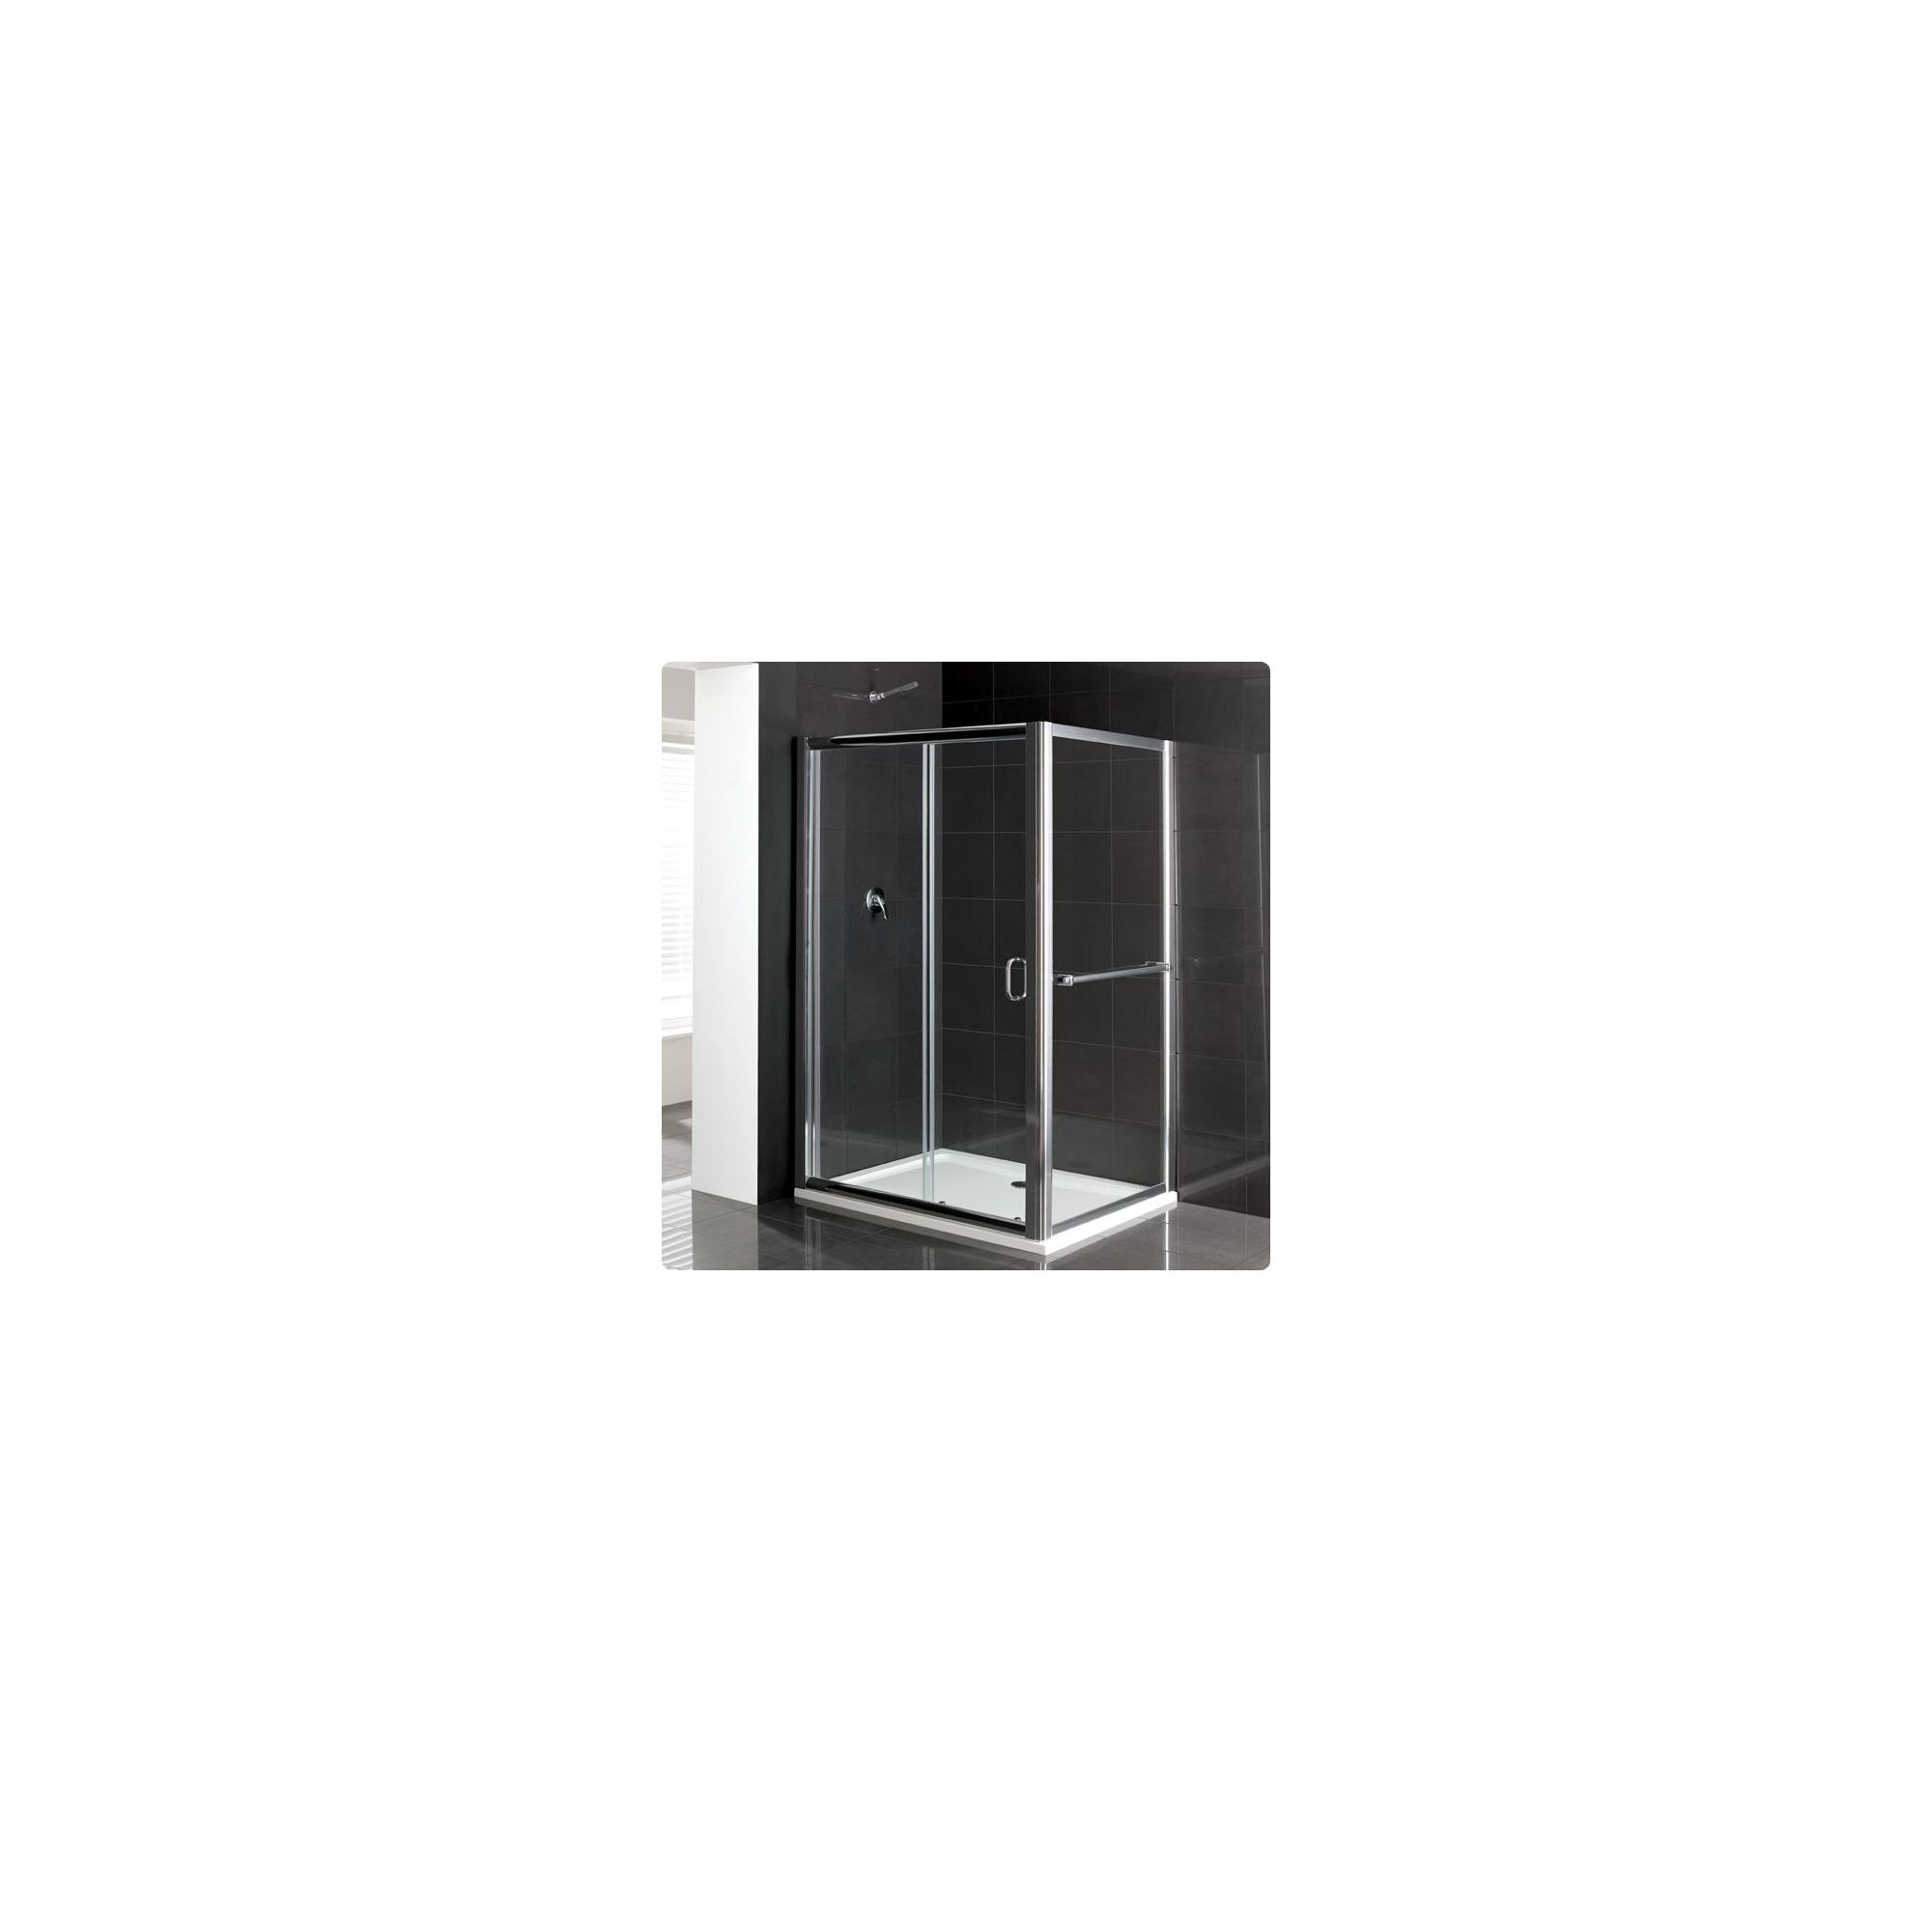 Duchy Elite Silver Sliding Door Shower Enclosure, 1400mm x 900mm, Standard Tray, 6mm Glass at Tesco Direct